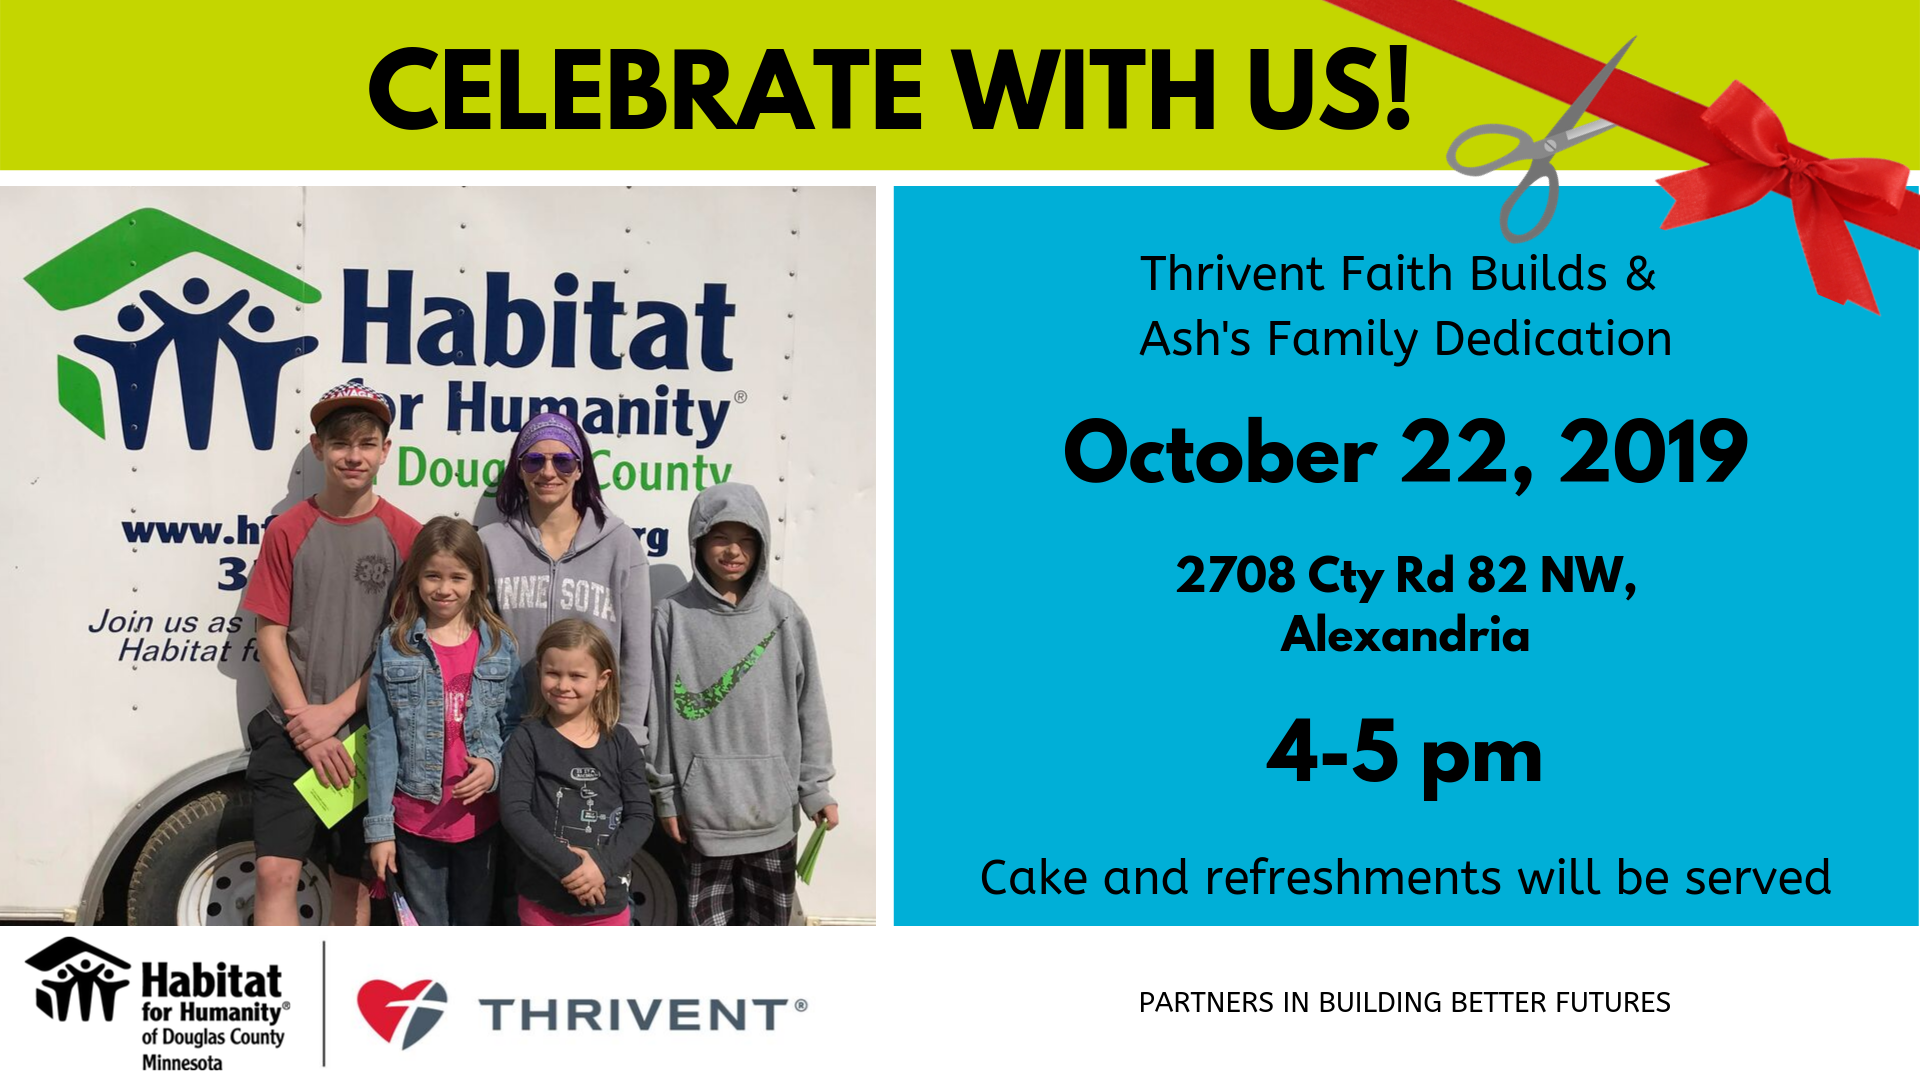 Thrivent Faith Builds Dedication for Ash's Family - October 22, 20190